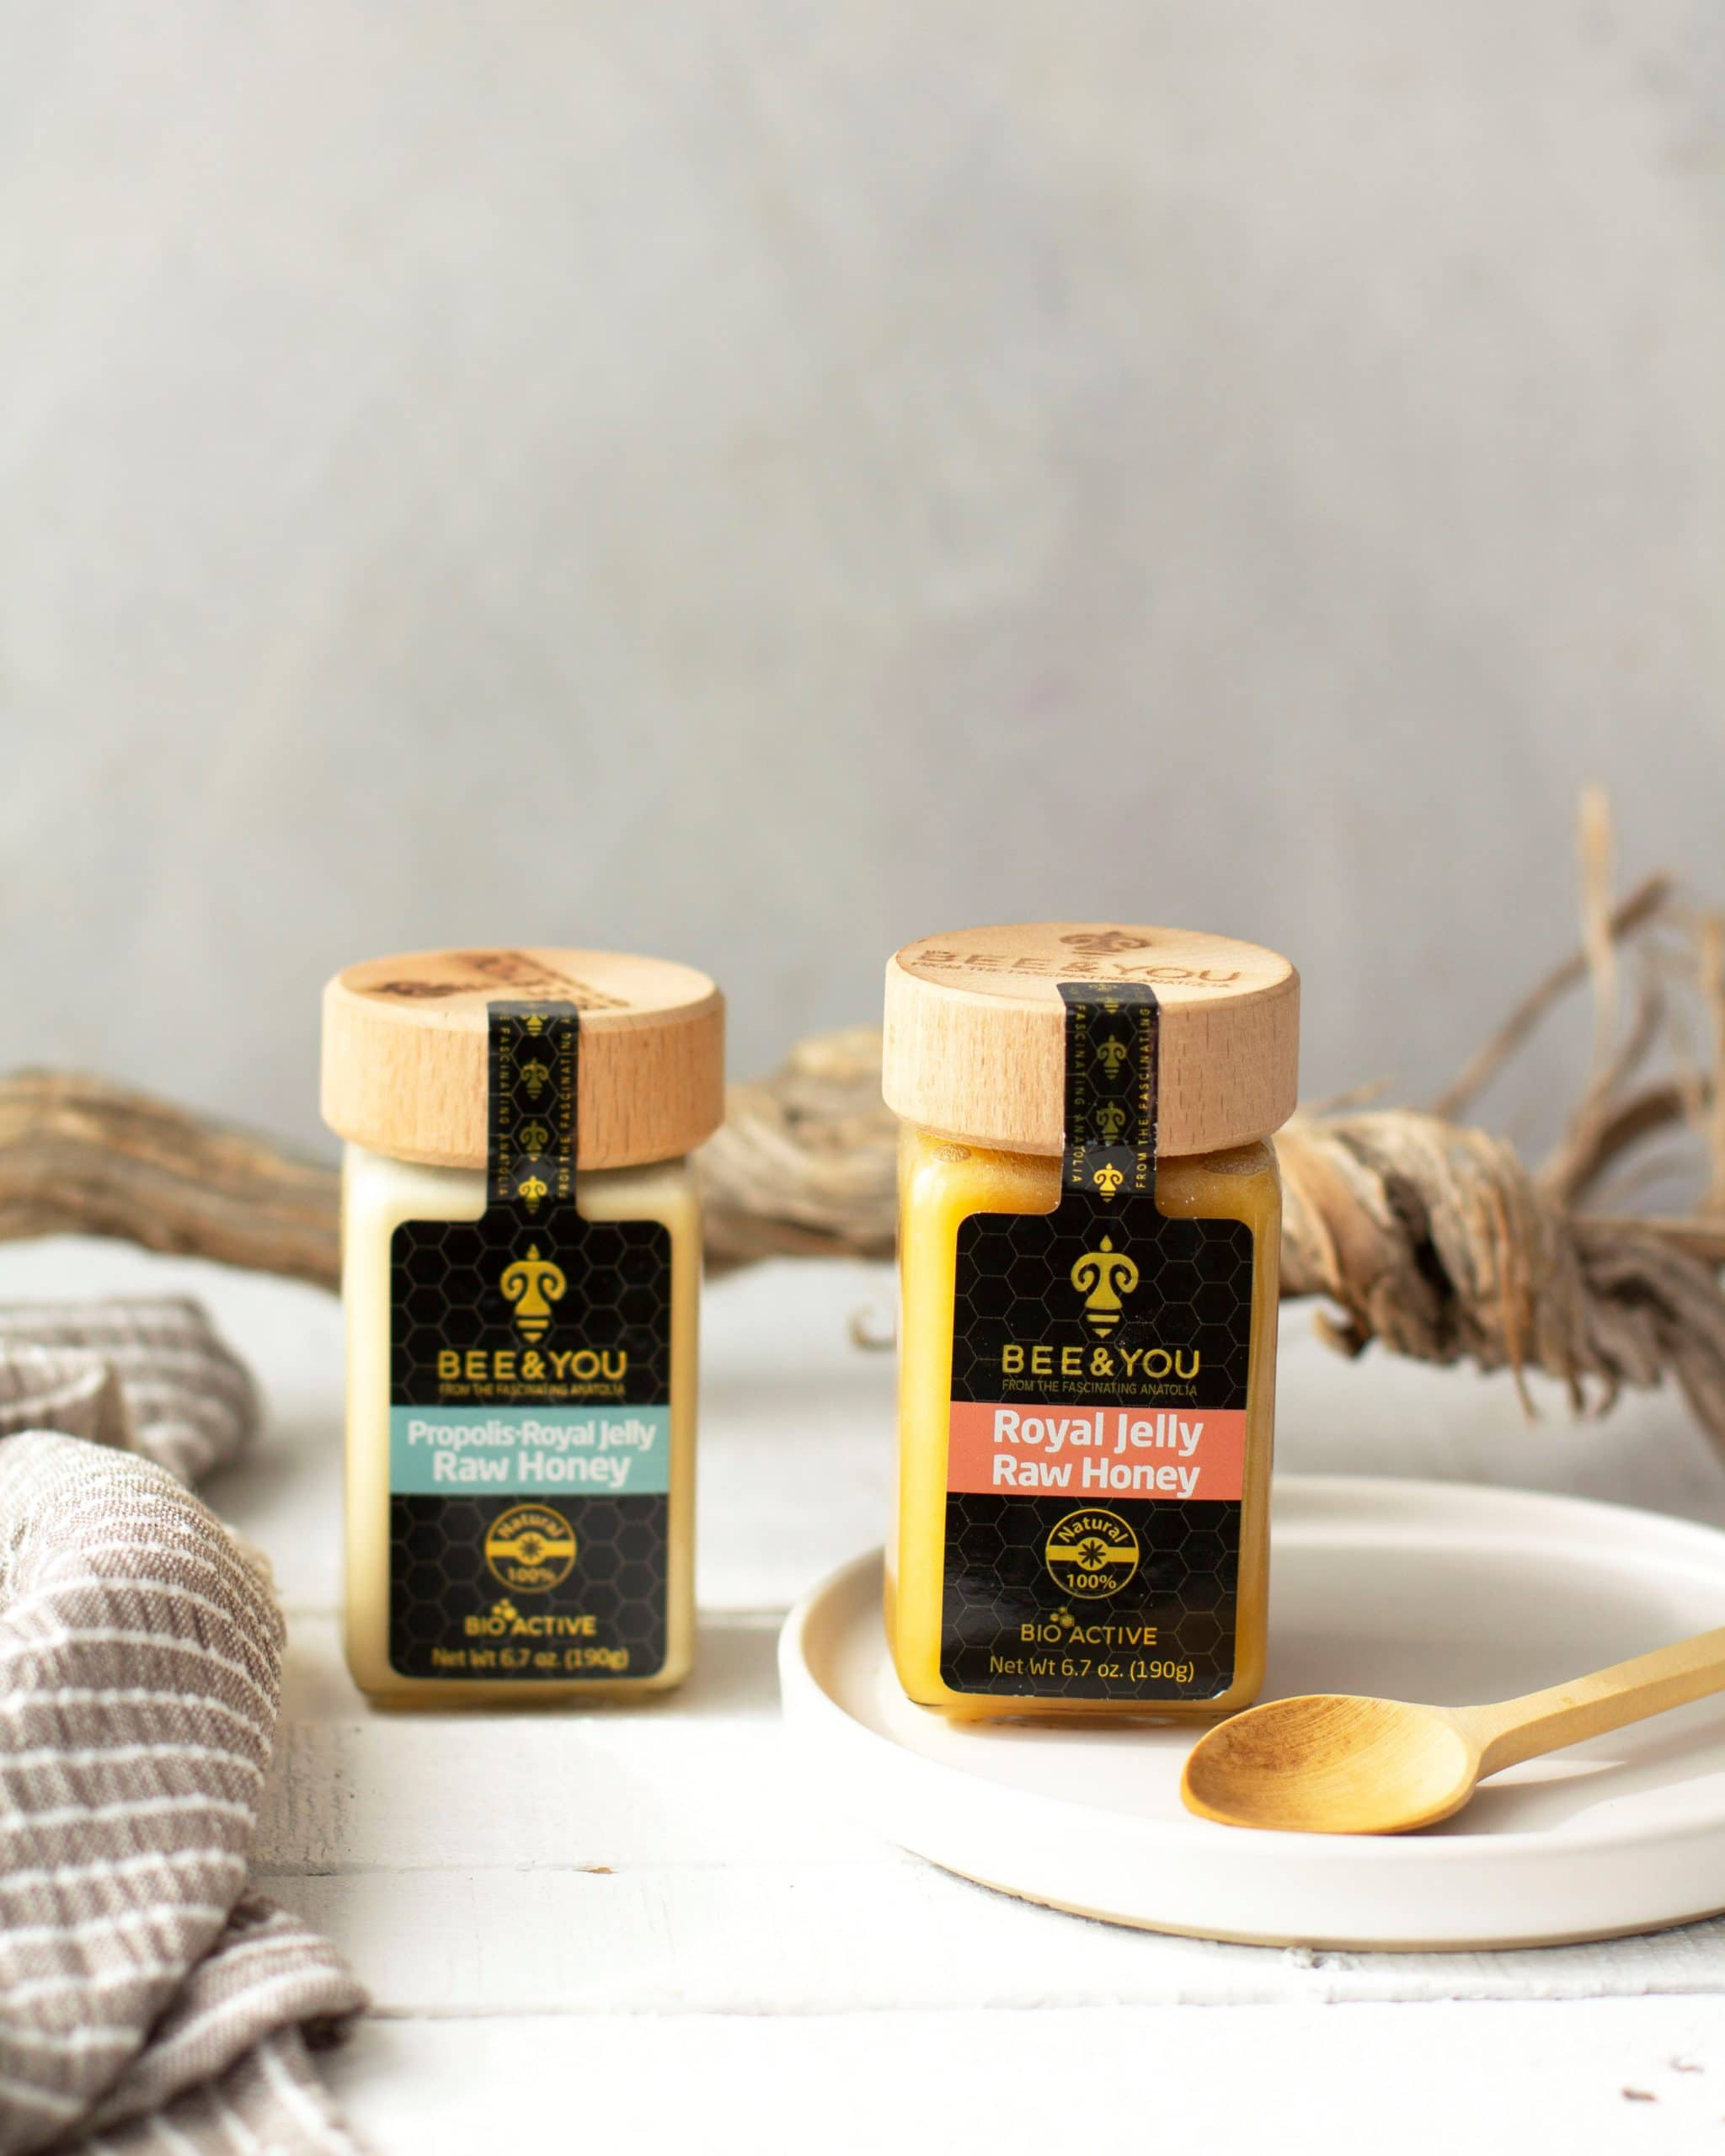 Bee and You products (Royal Jelly, Propolis,Pure Raw Honey) are antiviral, antibacterial and they are natural energy boosters. They are effective in fighting allergy (spring and fall) symptoms naturally and they are antibacterial, immune support